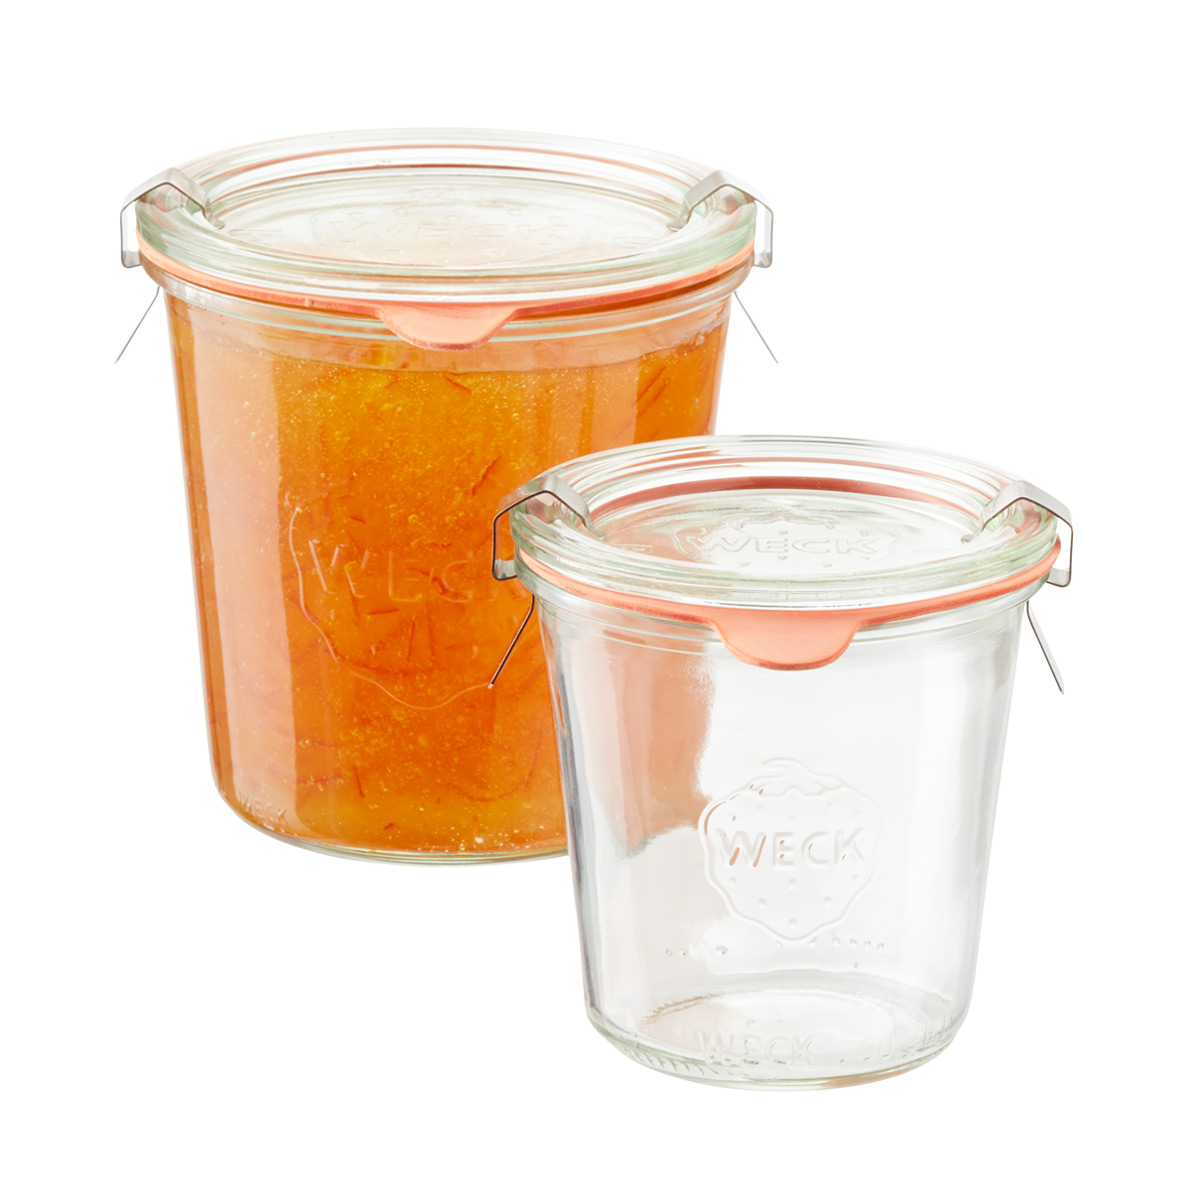 Weck Sturz Glass Canning Jars